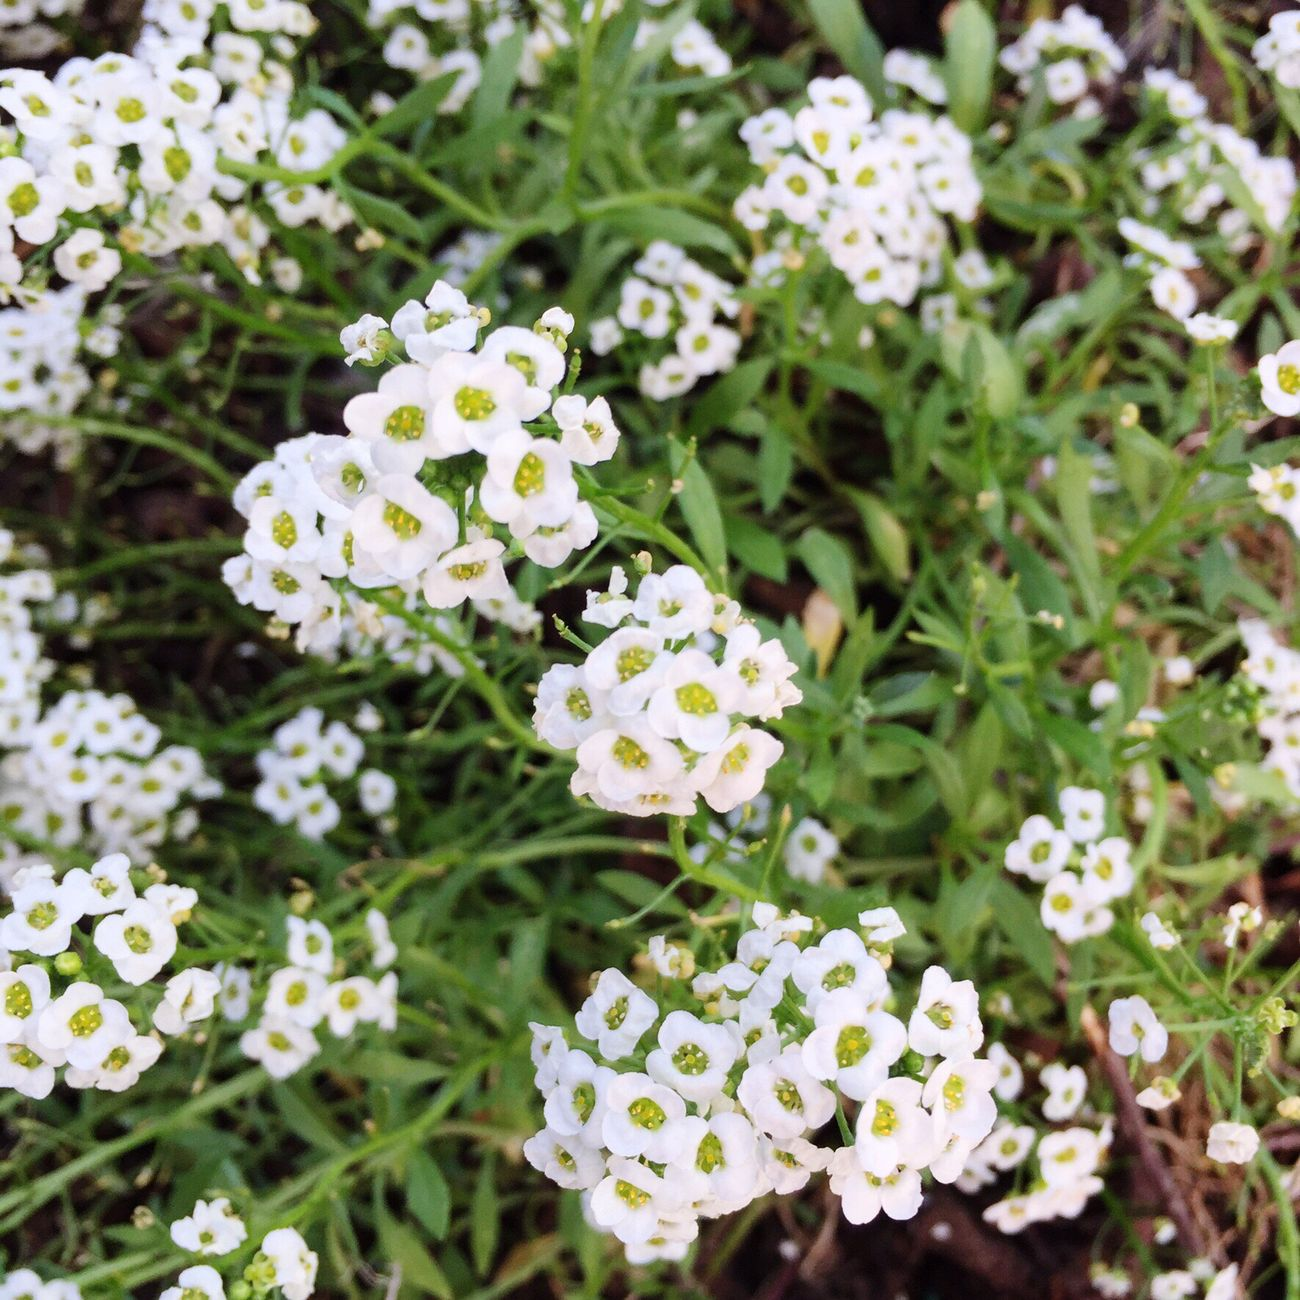 Little white flower 🌸🌸🌸 Flower Flowers LittleWhiteFlower Nature Backyard Garden Pretty 🌸🌸🌸